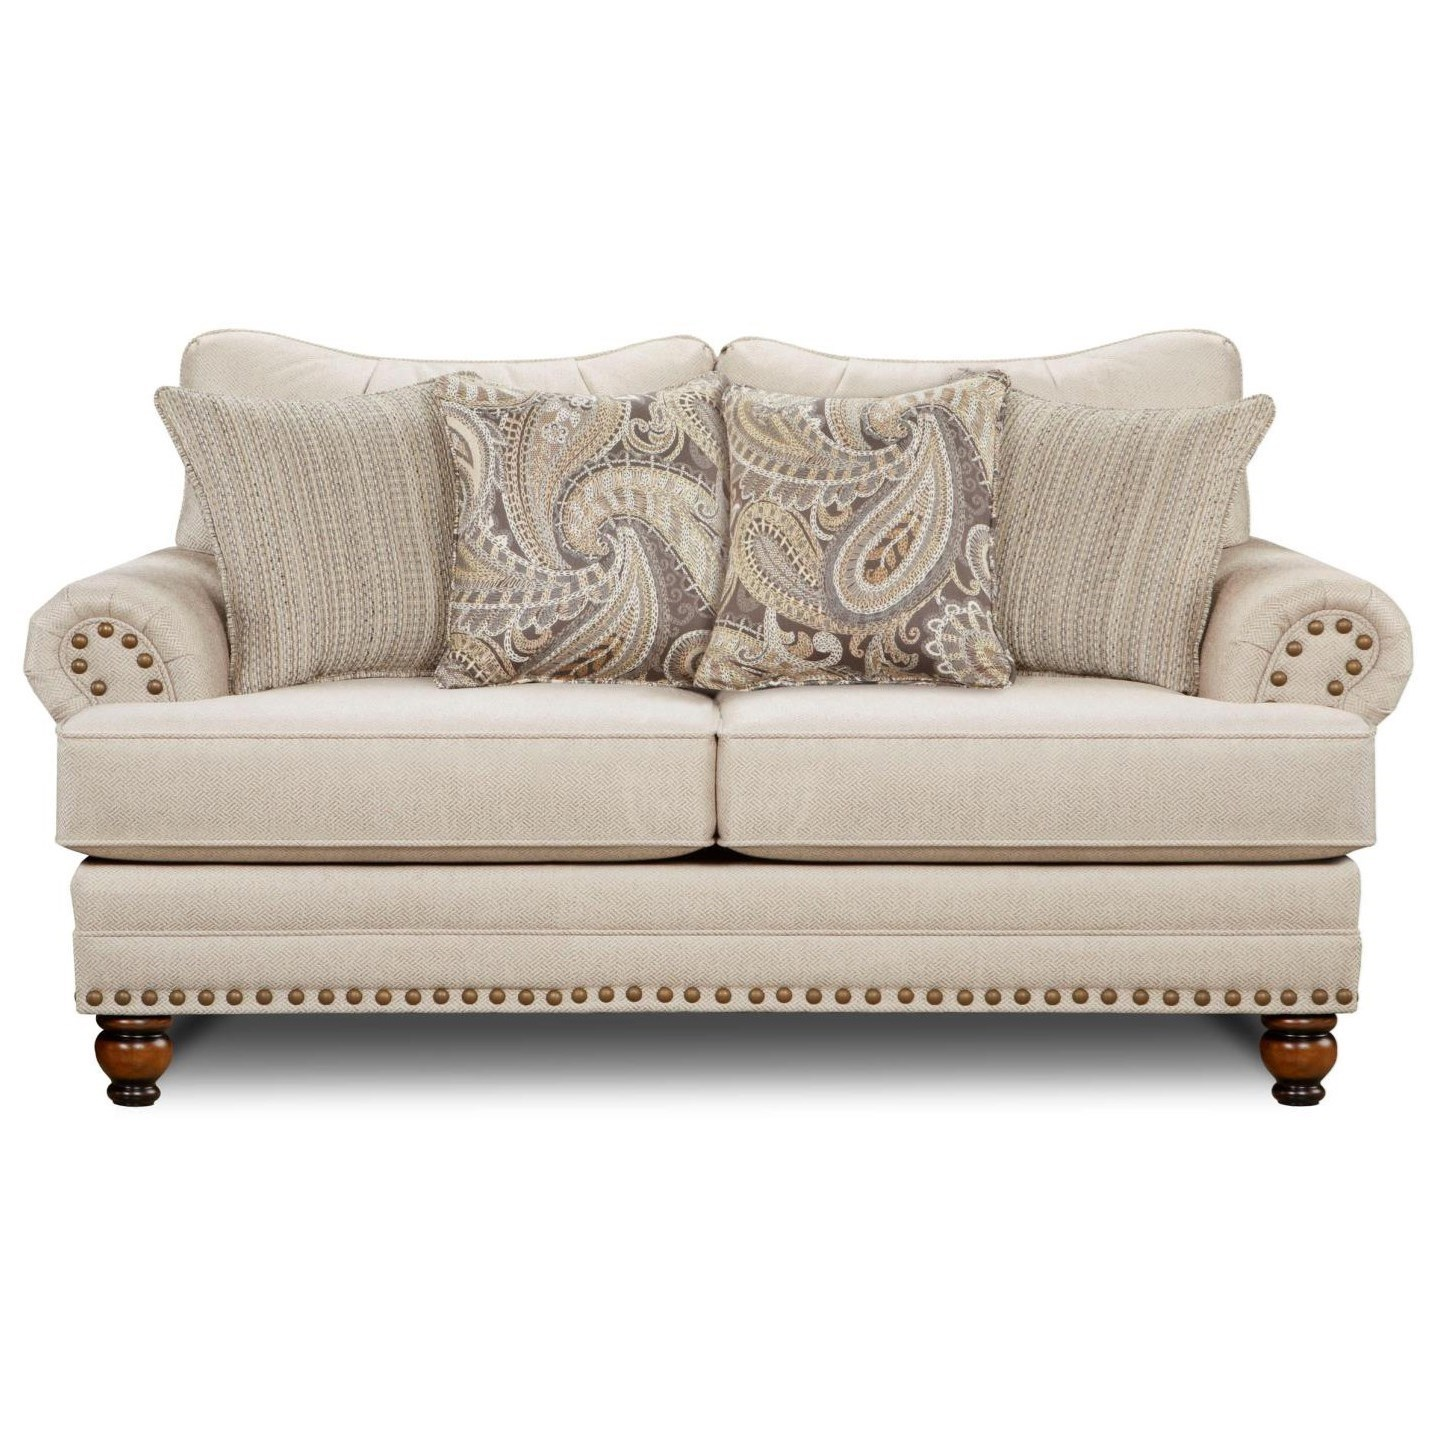 2820 Traditional Loveseat by Powell's V.I.P. at Powell's Furniture and Mattress